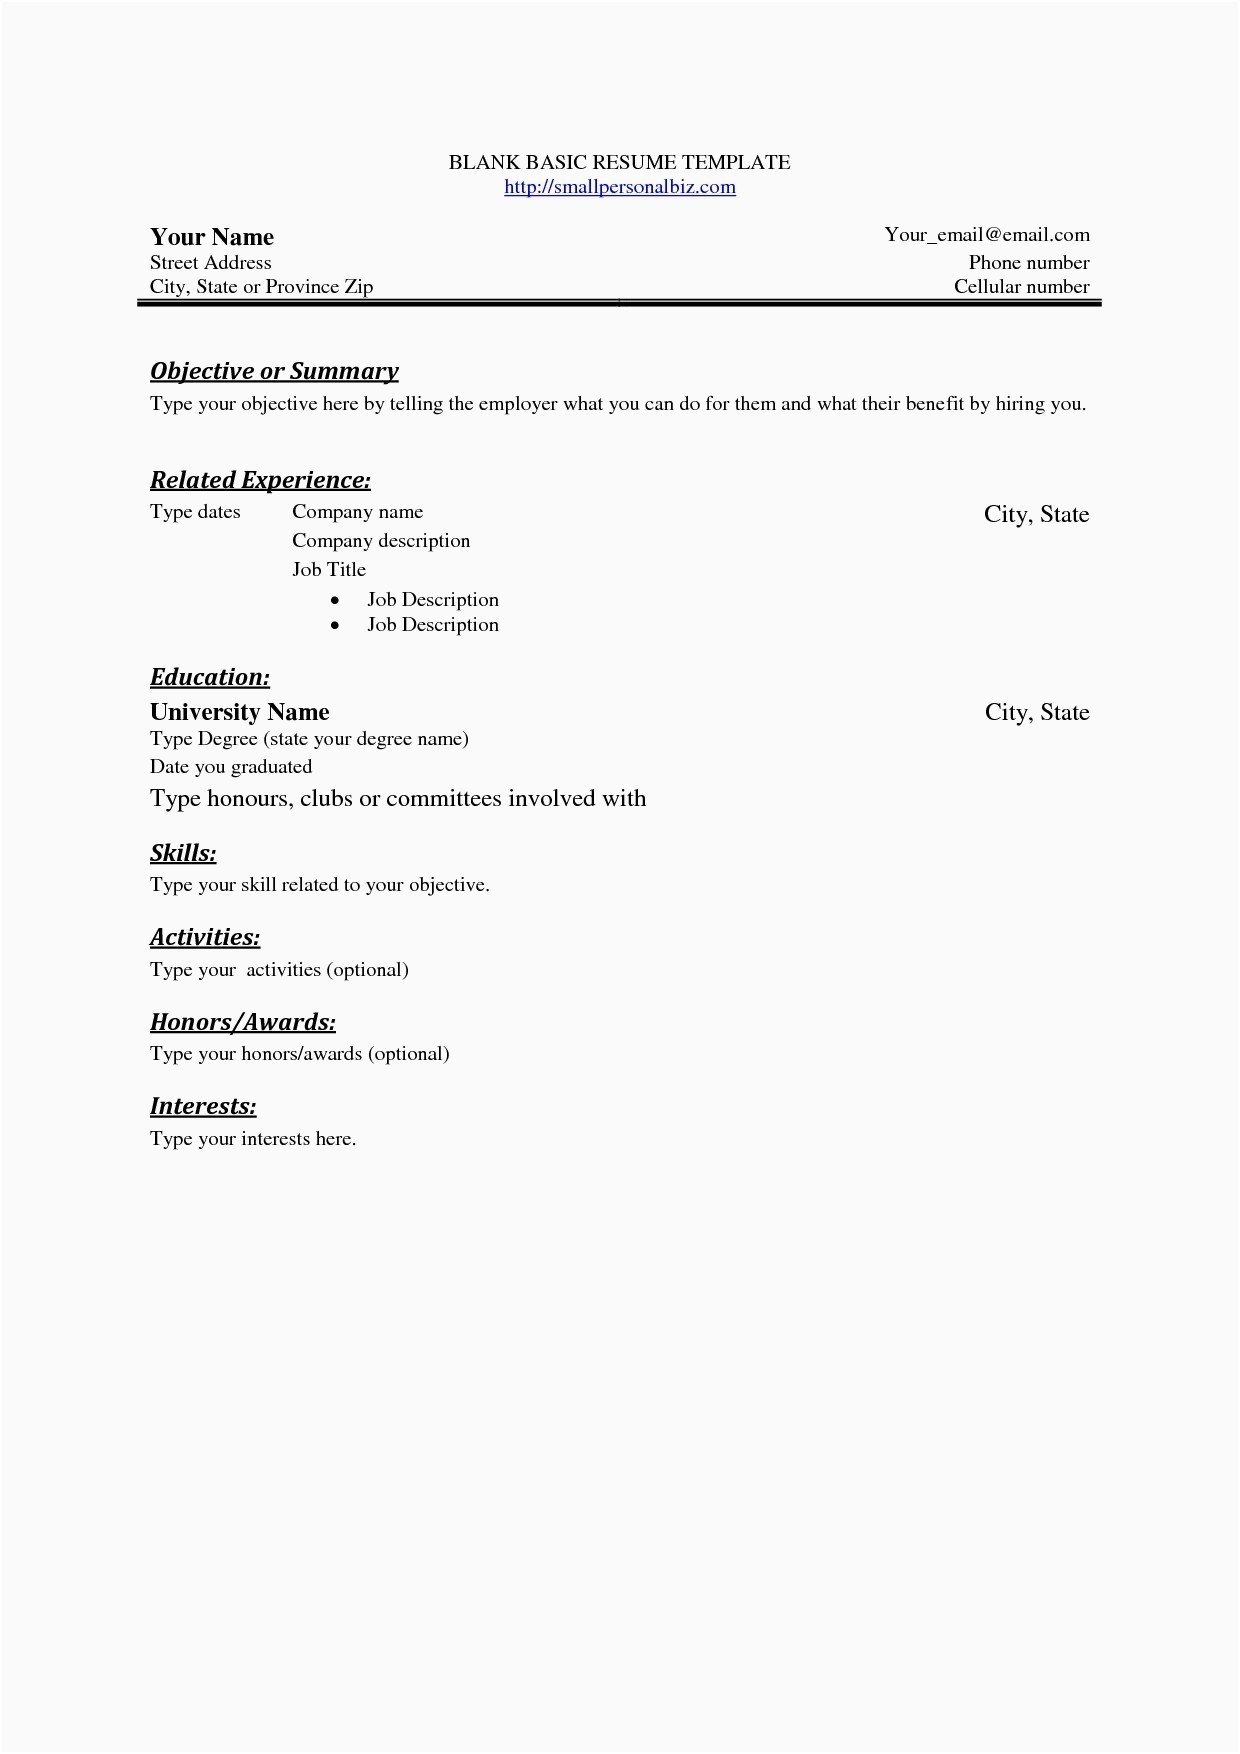 Free Acting Resume Template - Free Cease and Desist Letter Template 2018 Cfo Resume Template